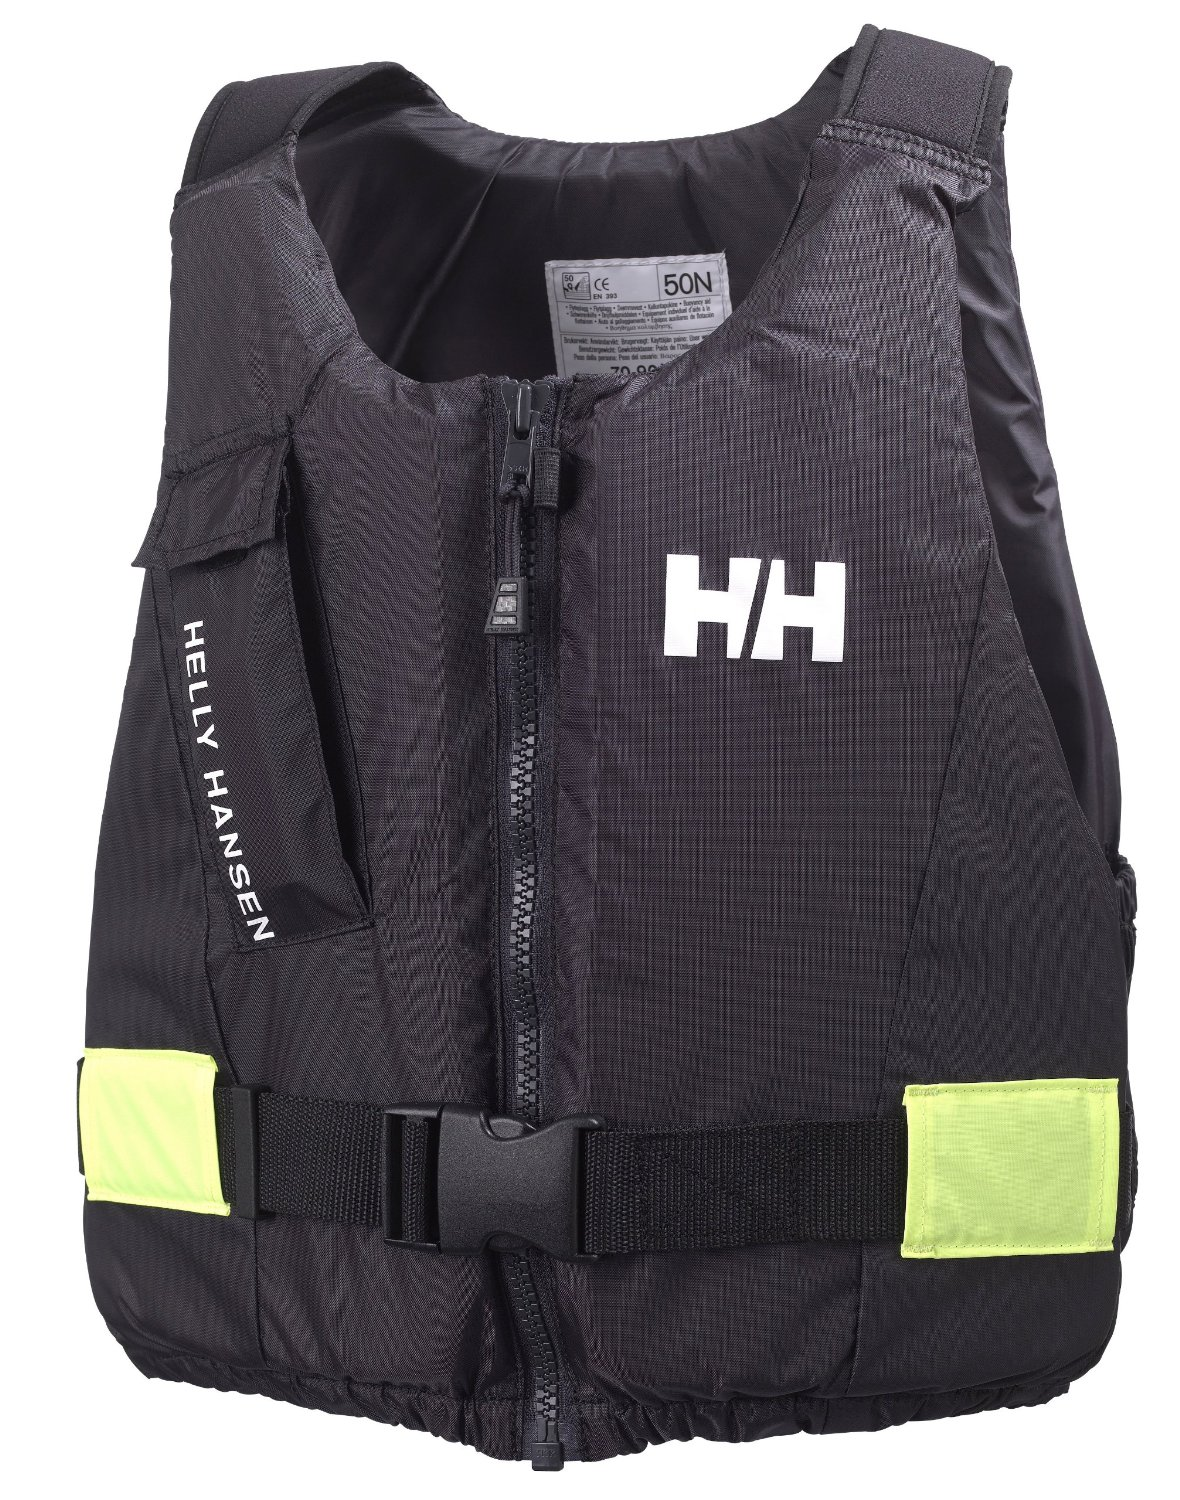 Helly Hansen 50N Rider Vest / Buoyancy Aid Ebony 33820